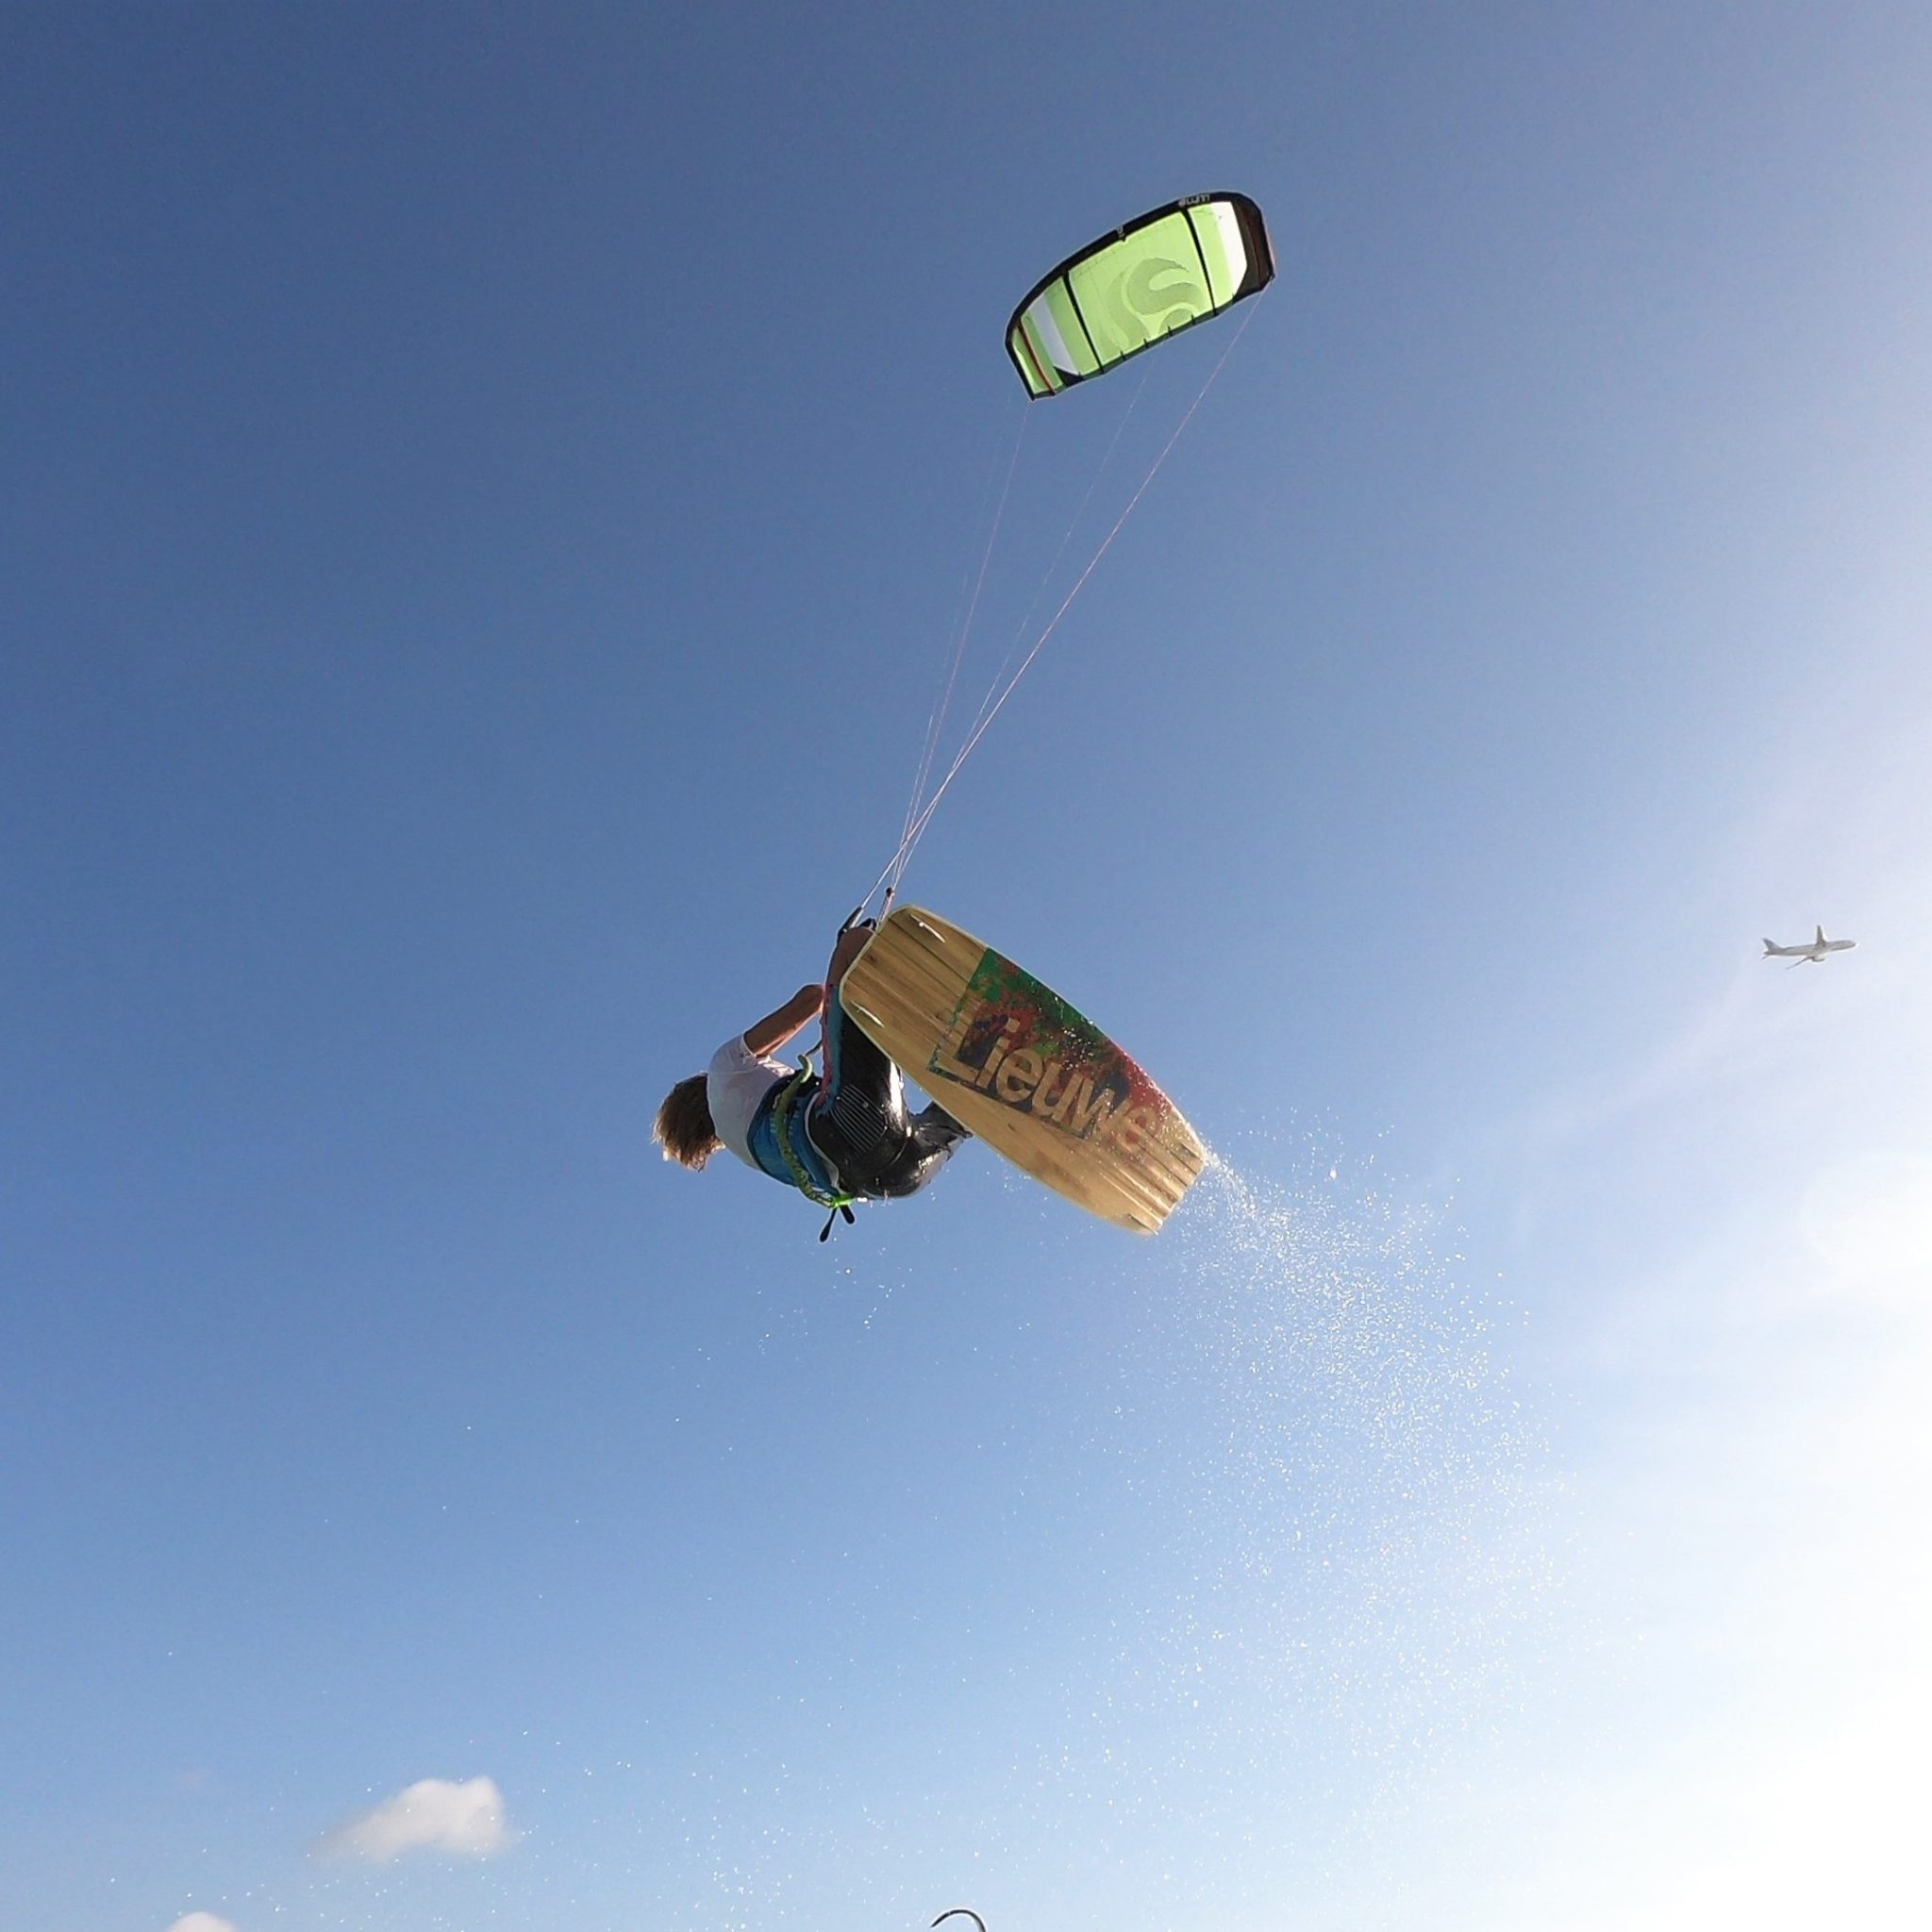 Kitesurfing in Aruba | Holidays and Travel Guides